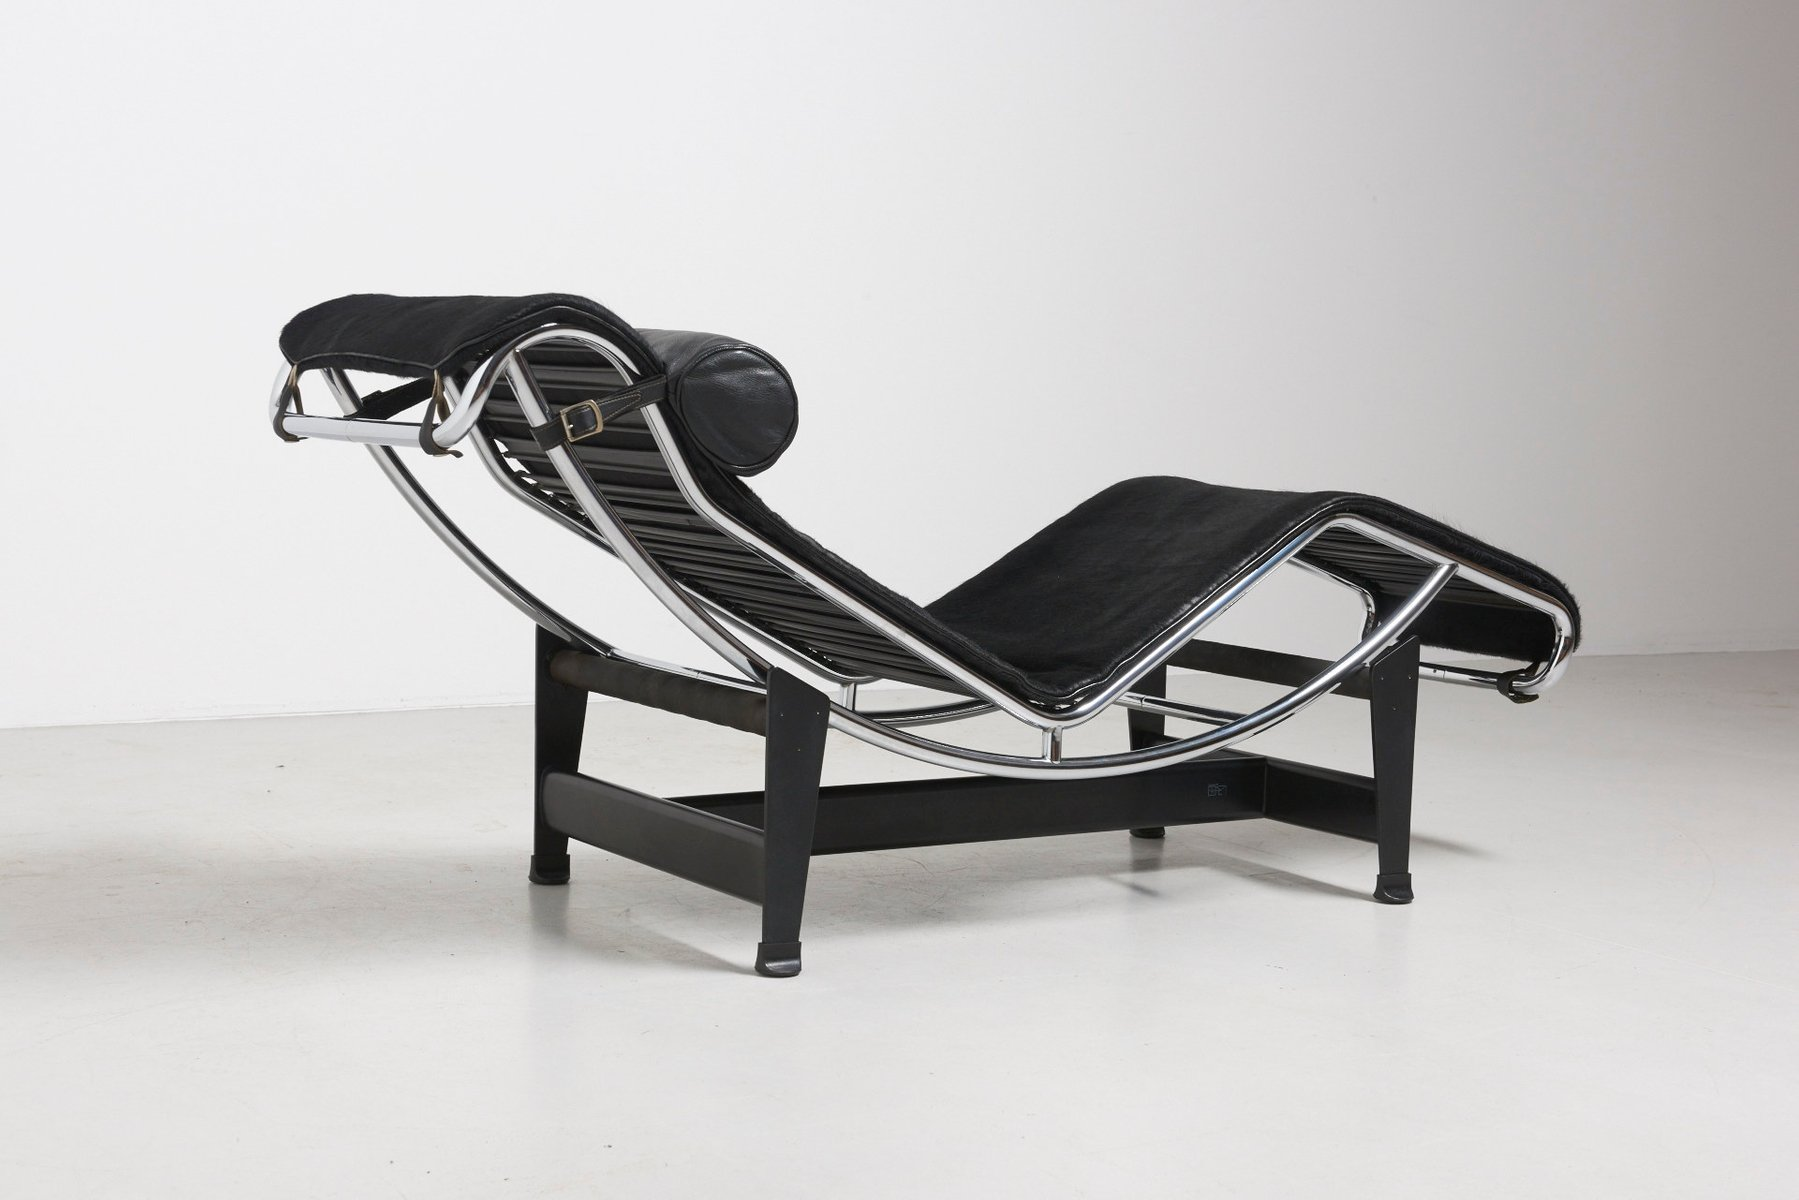 Vintage lc4 chaise lounge by le corbusier for cassina for for Cassina chaise lounge